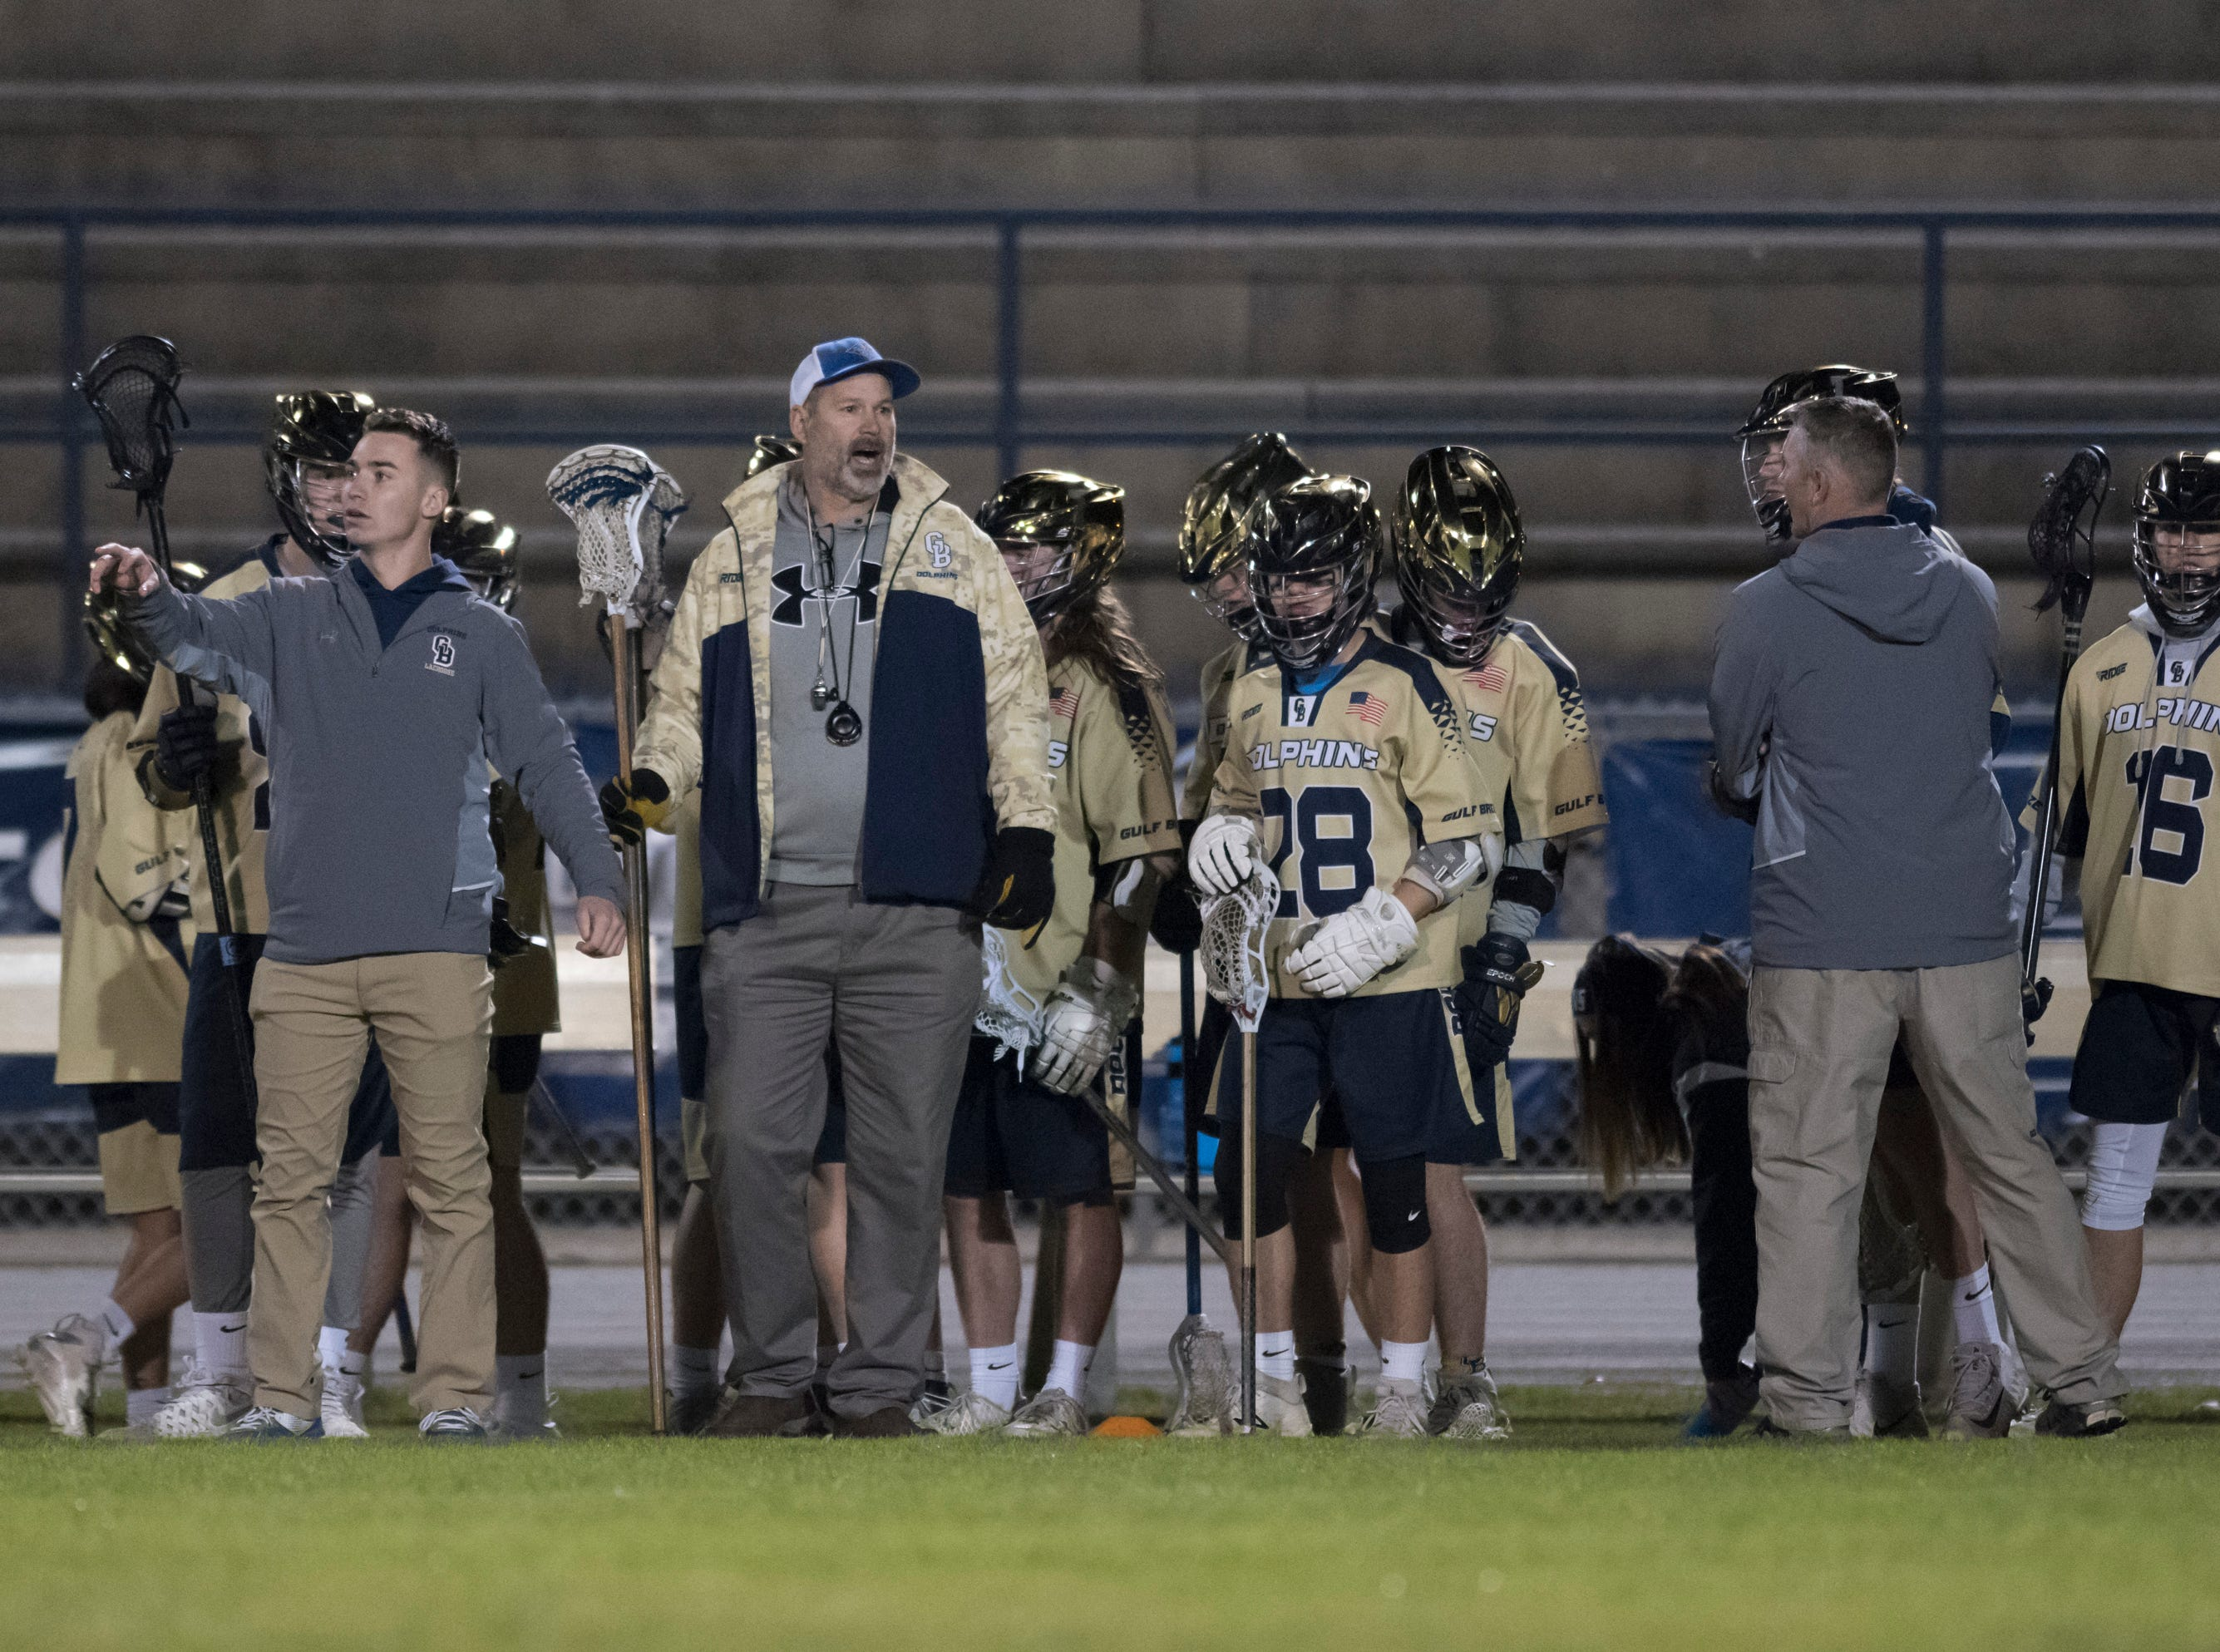 Catholic vs. Gulf Breeze boys lacrosse game at Gulf Breeze High School on Wednesday, March 6, 2019.